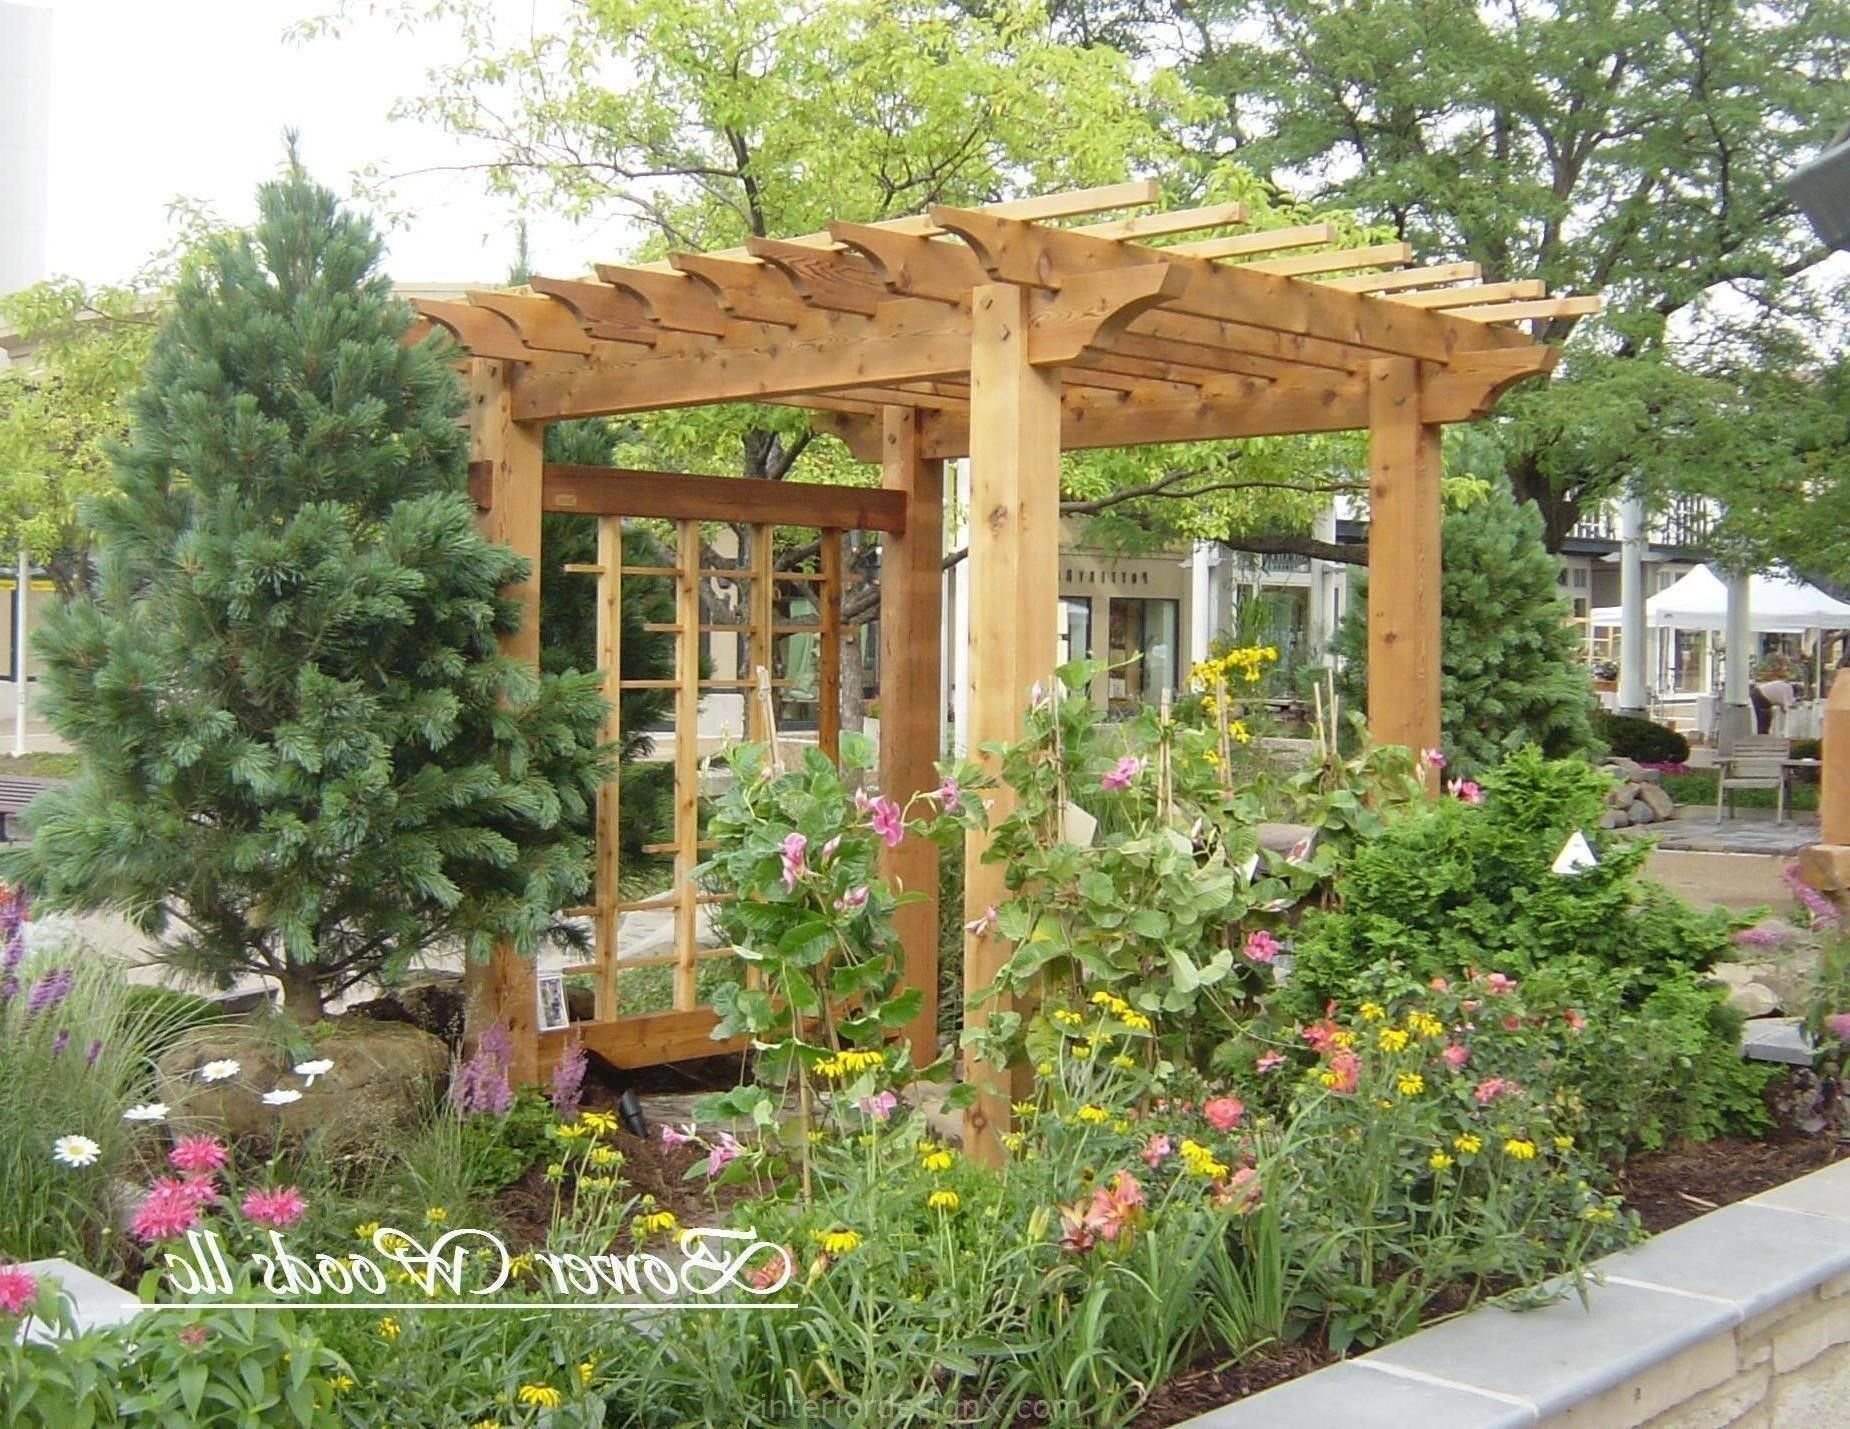 eddebacdadfccfe jpg backyard arbor design ideas wooden pergolas